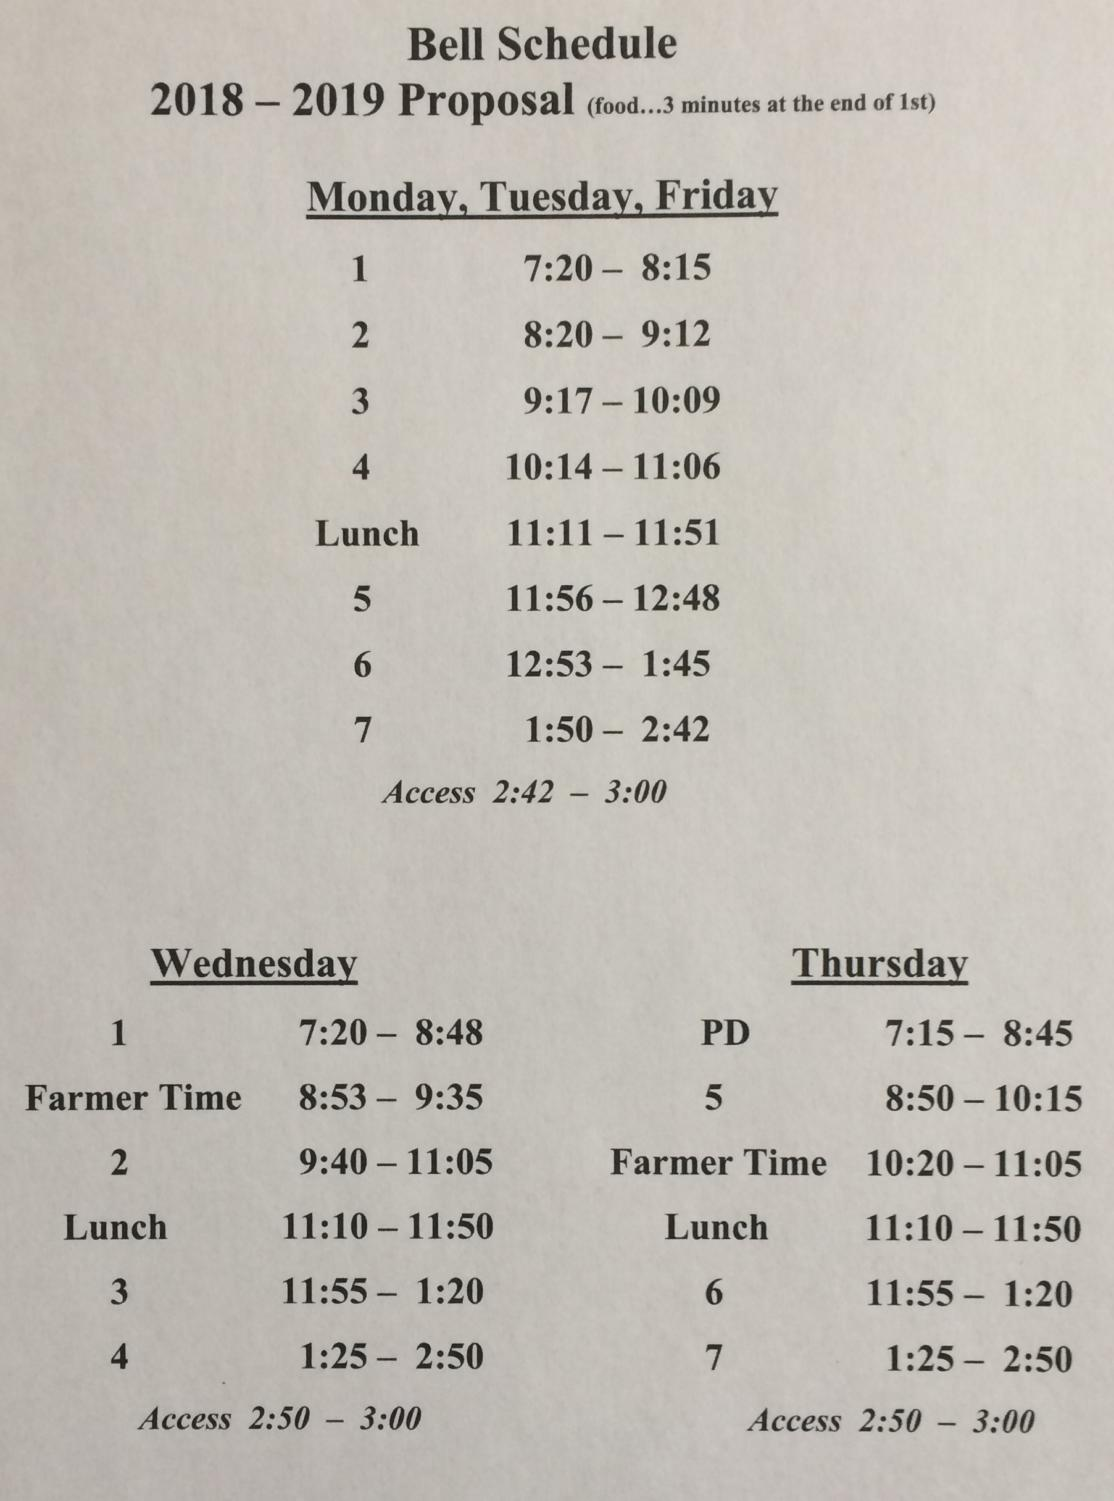 Next year's revised bell schedule.